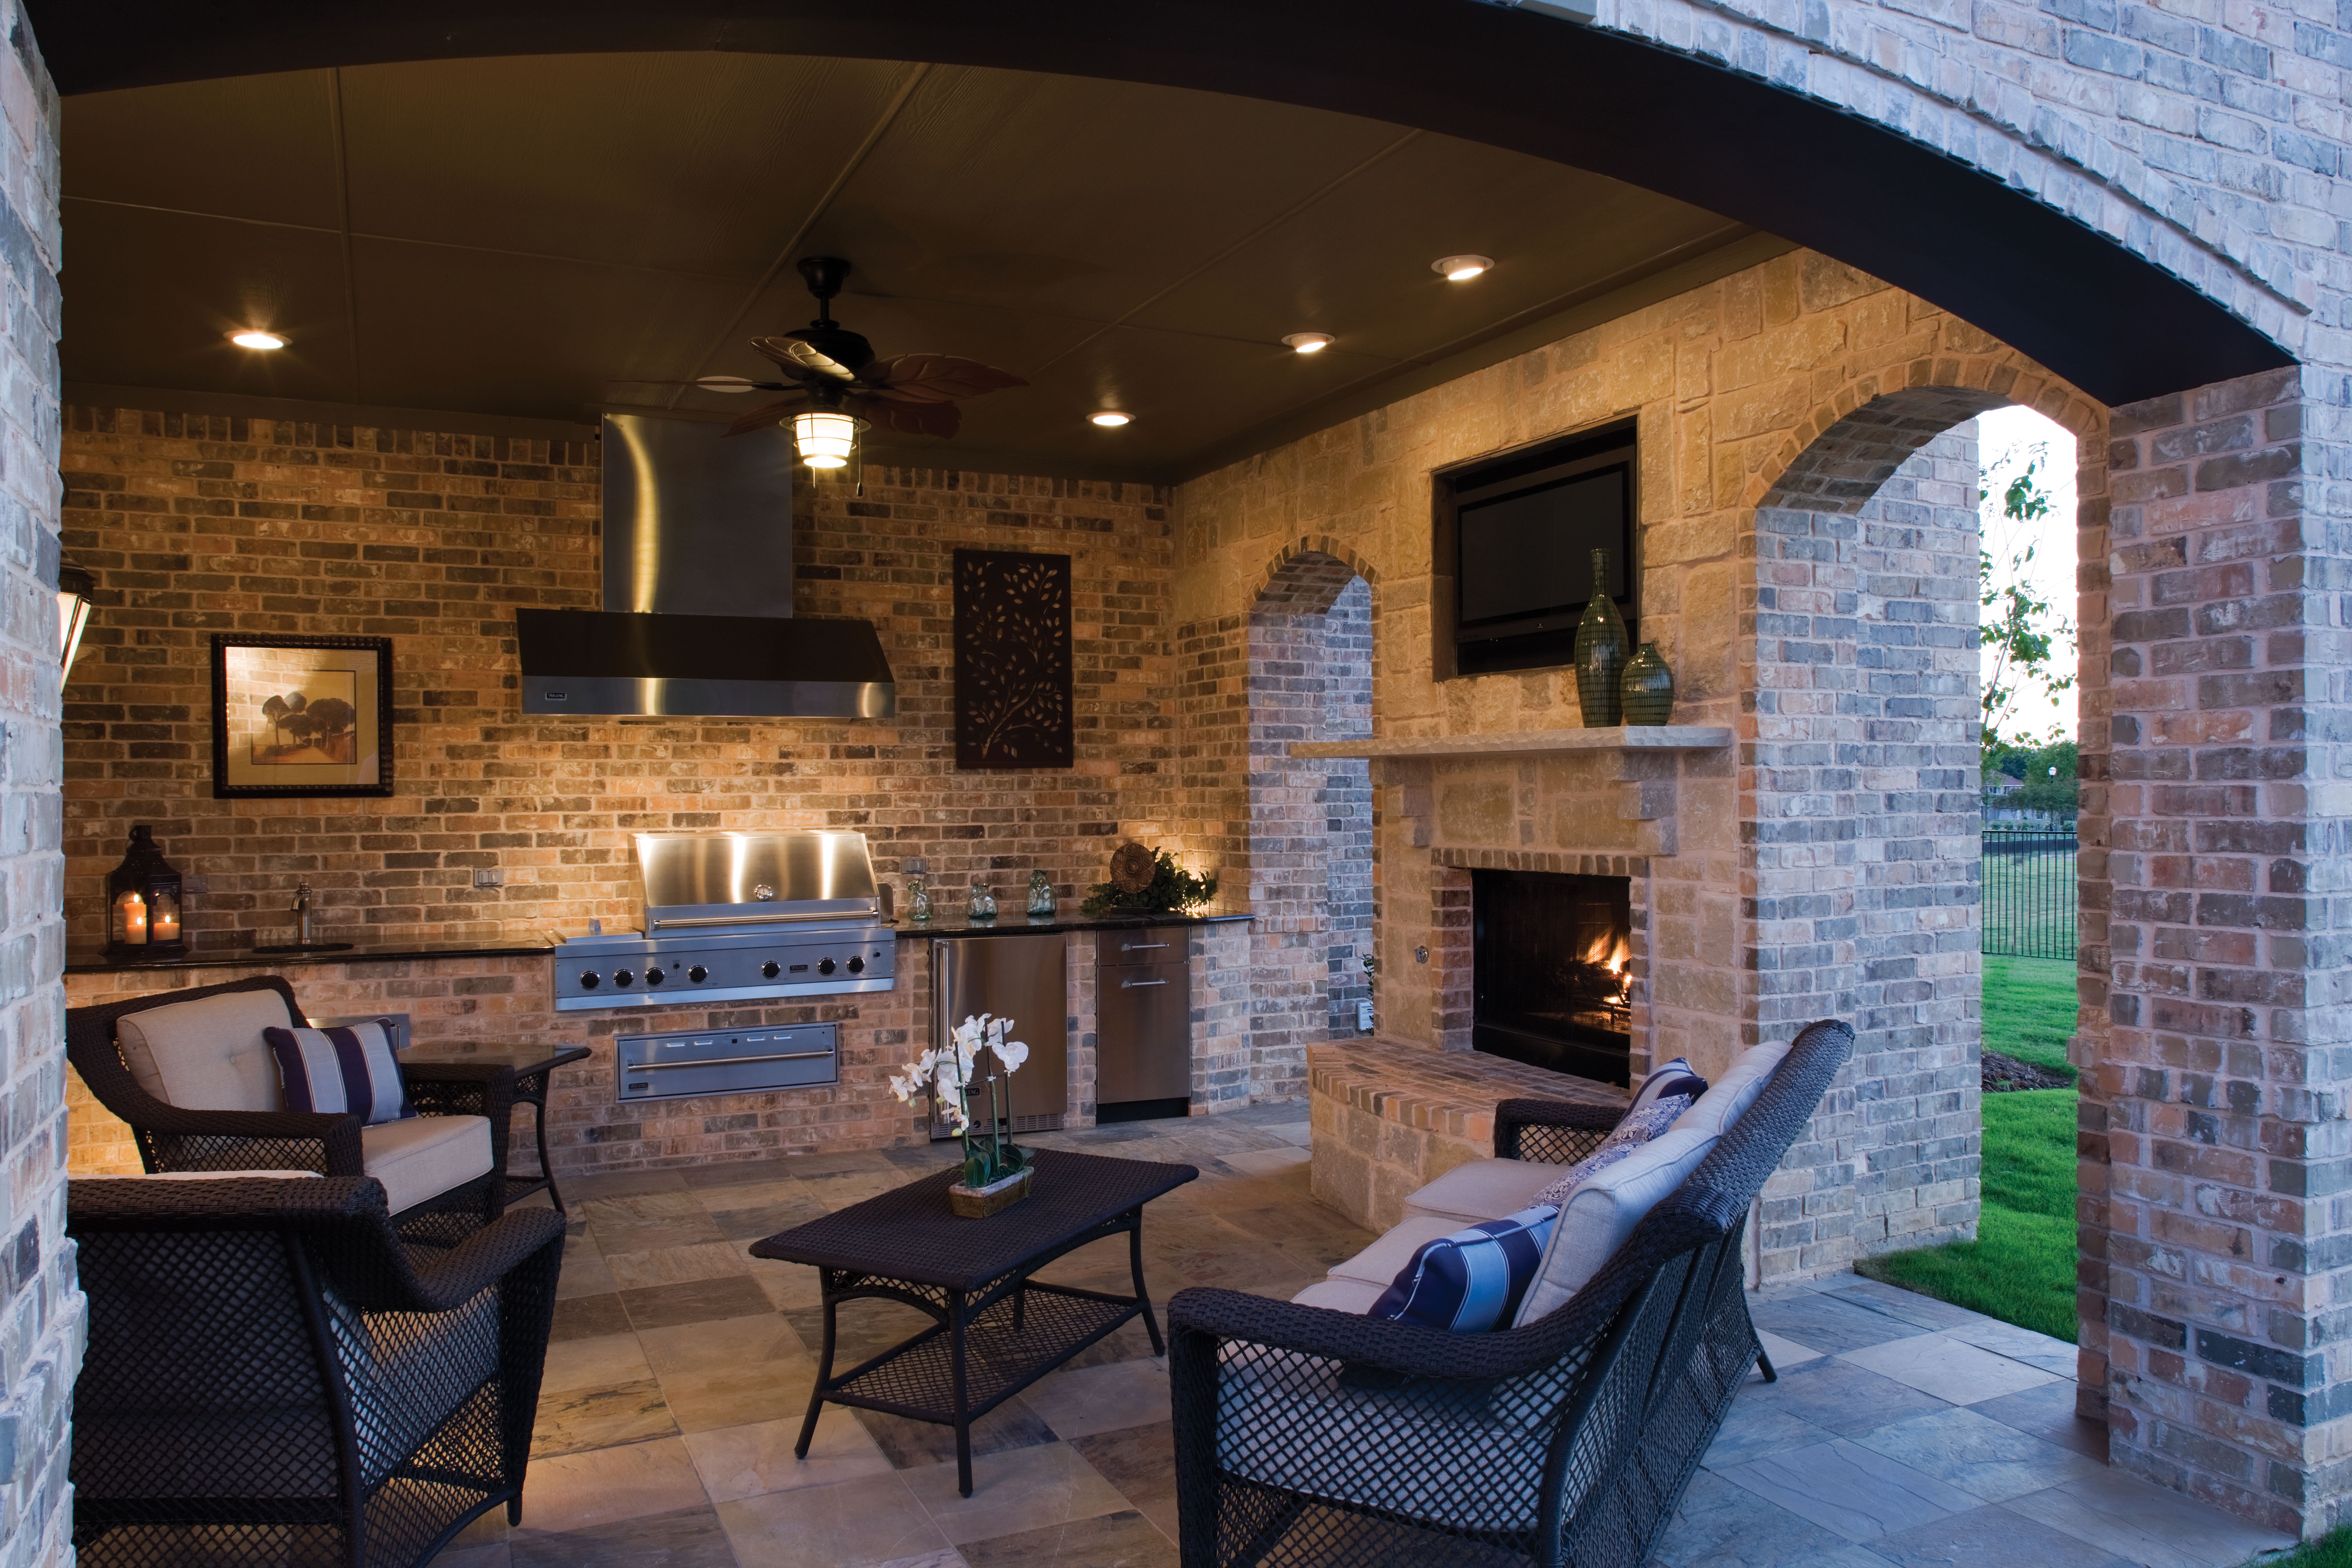 outdoor living area-kitchen-fireplace-tv-covered patio-kalamazoo-grand rapids